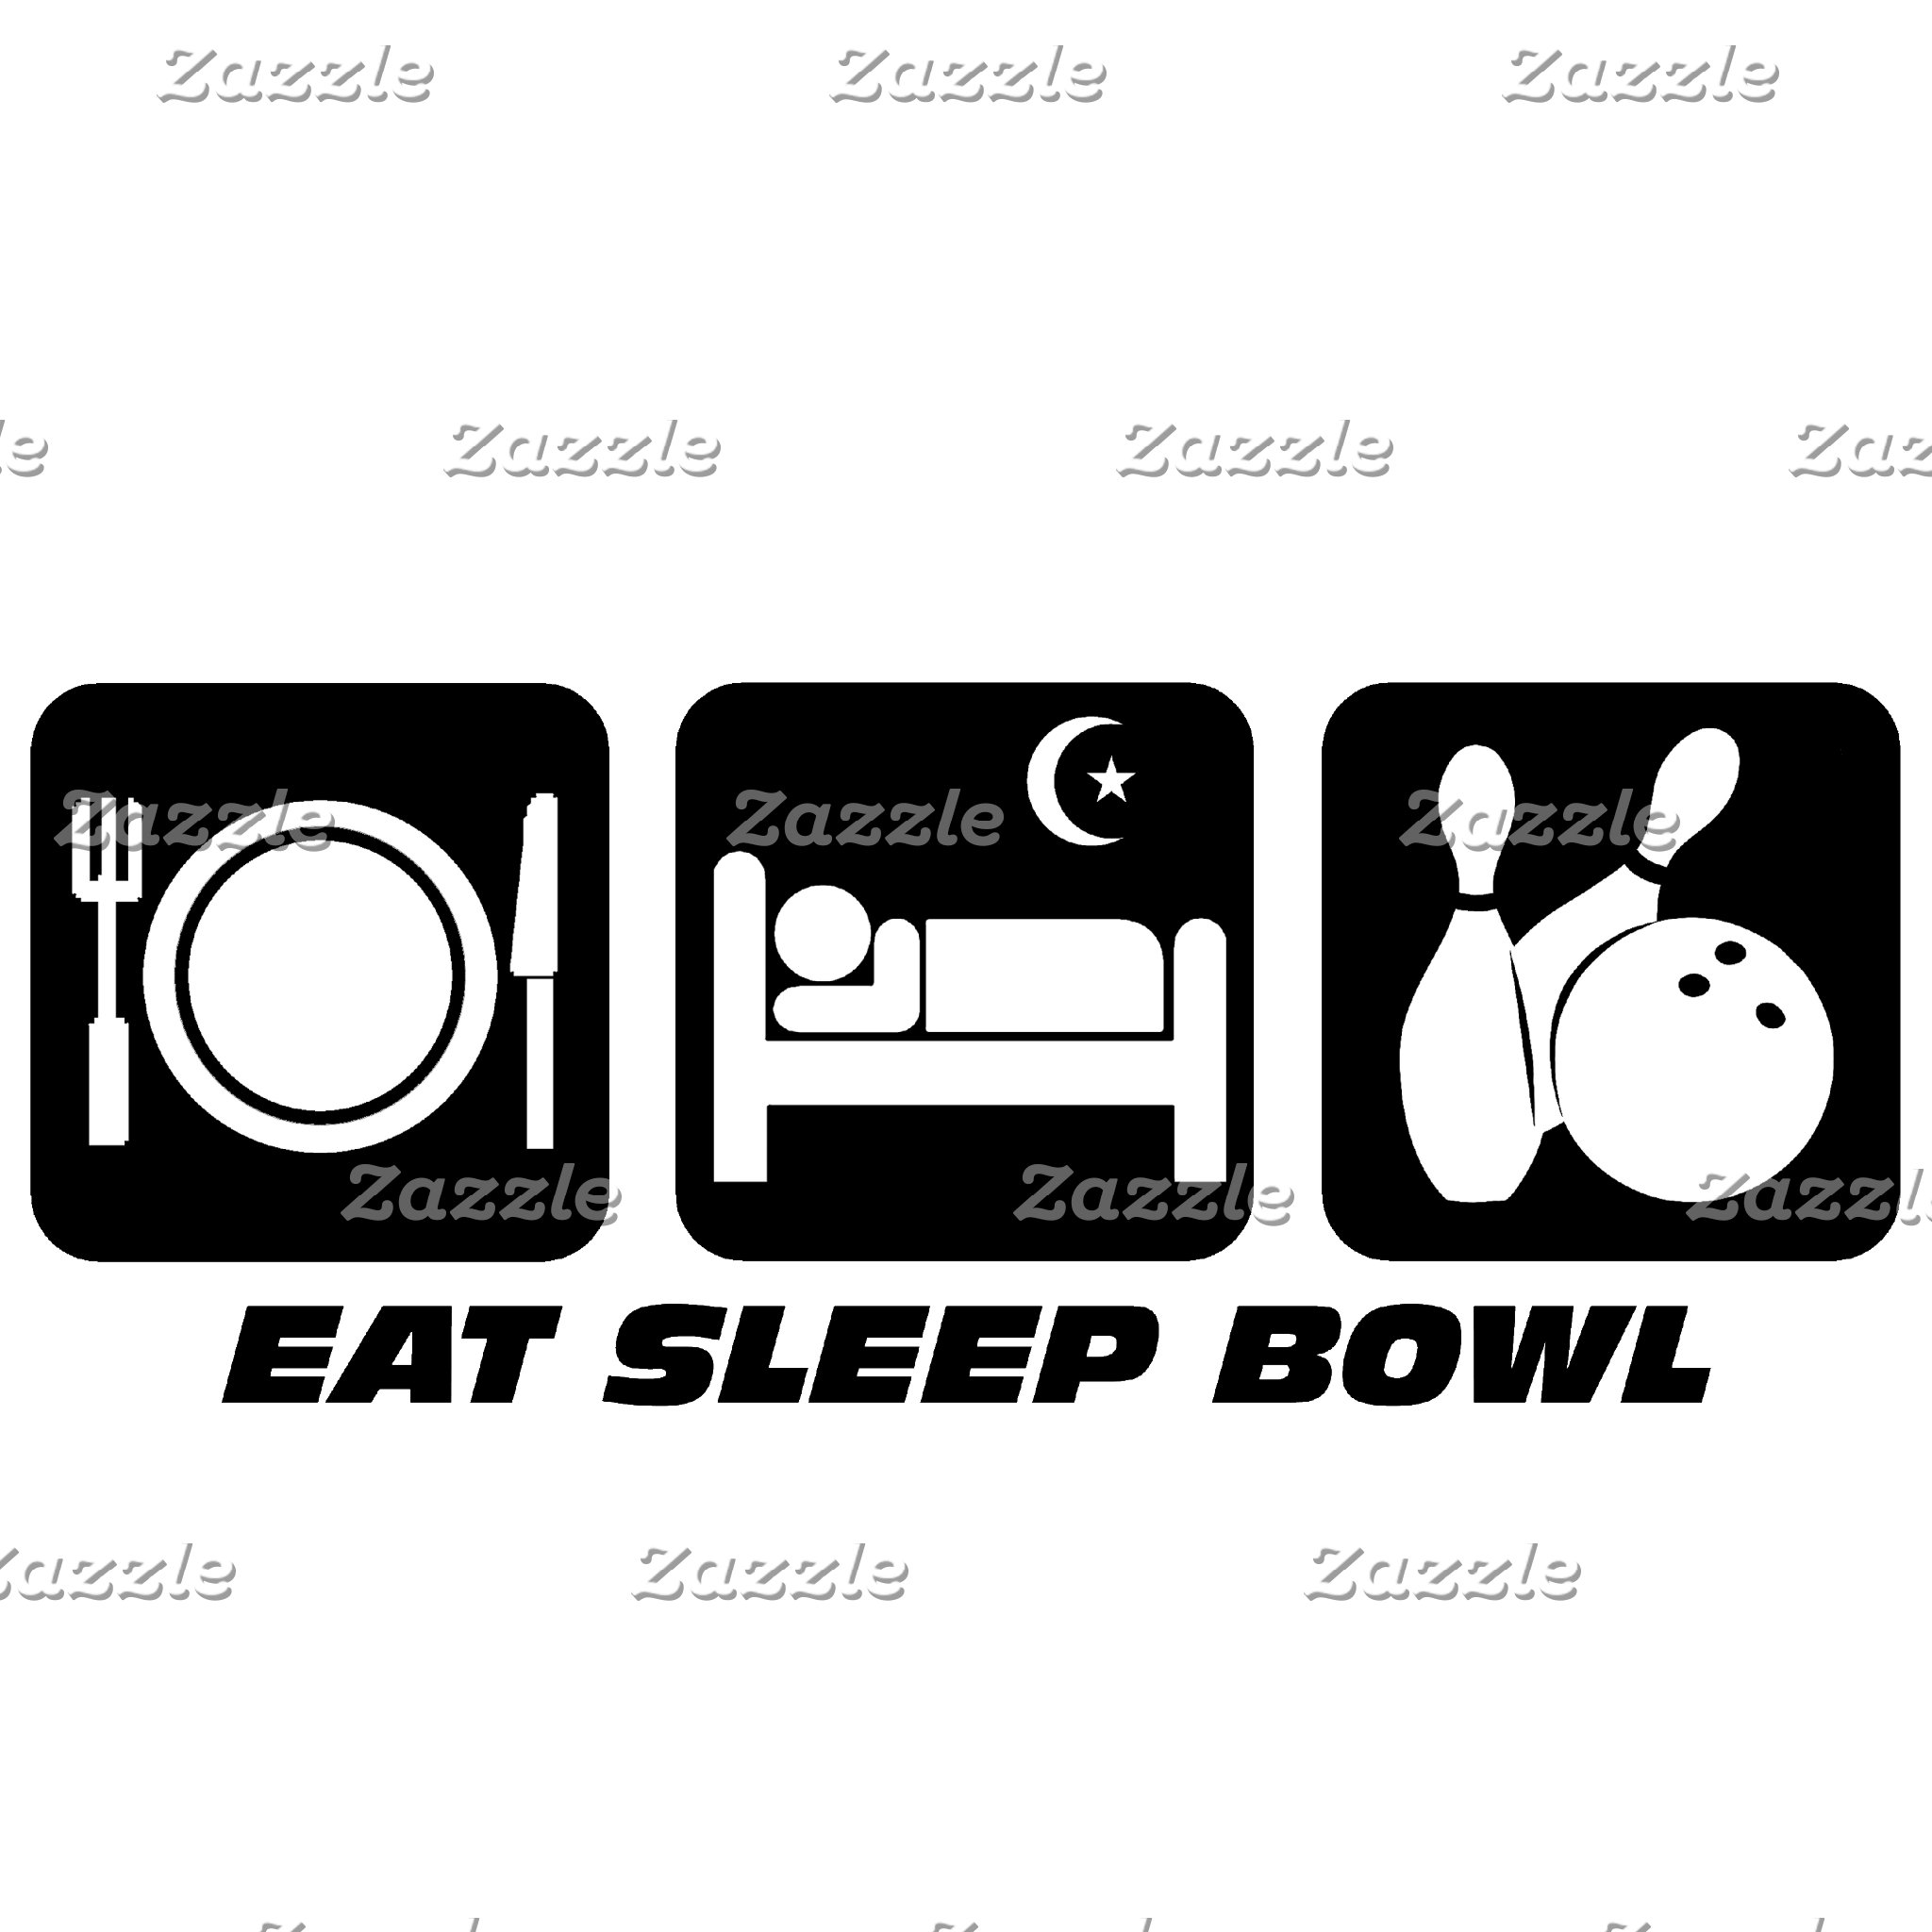 Eat sleep bowl